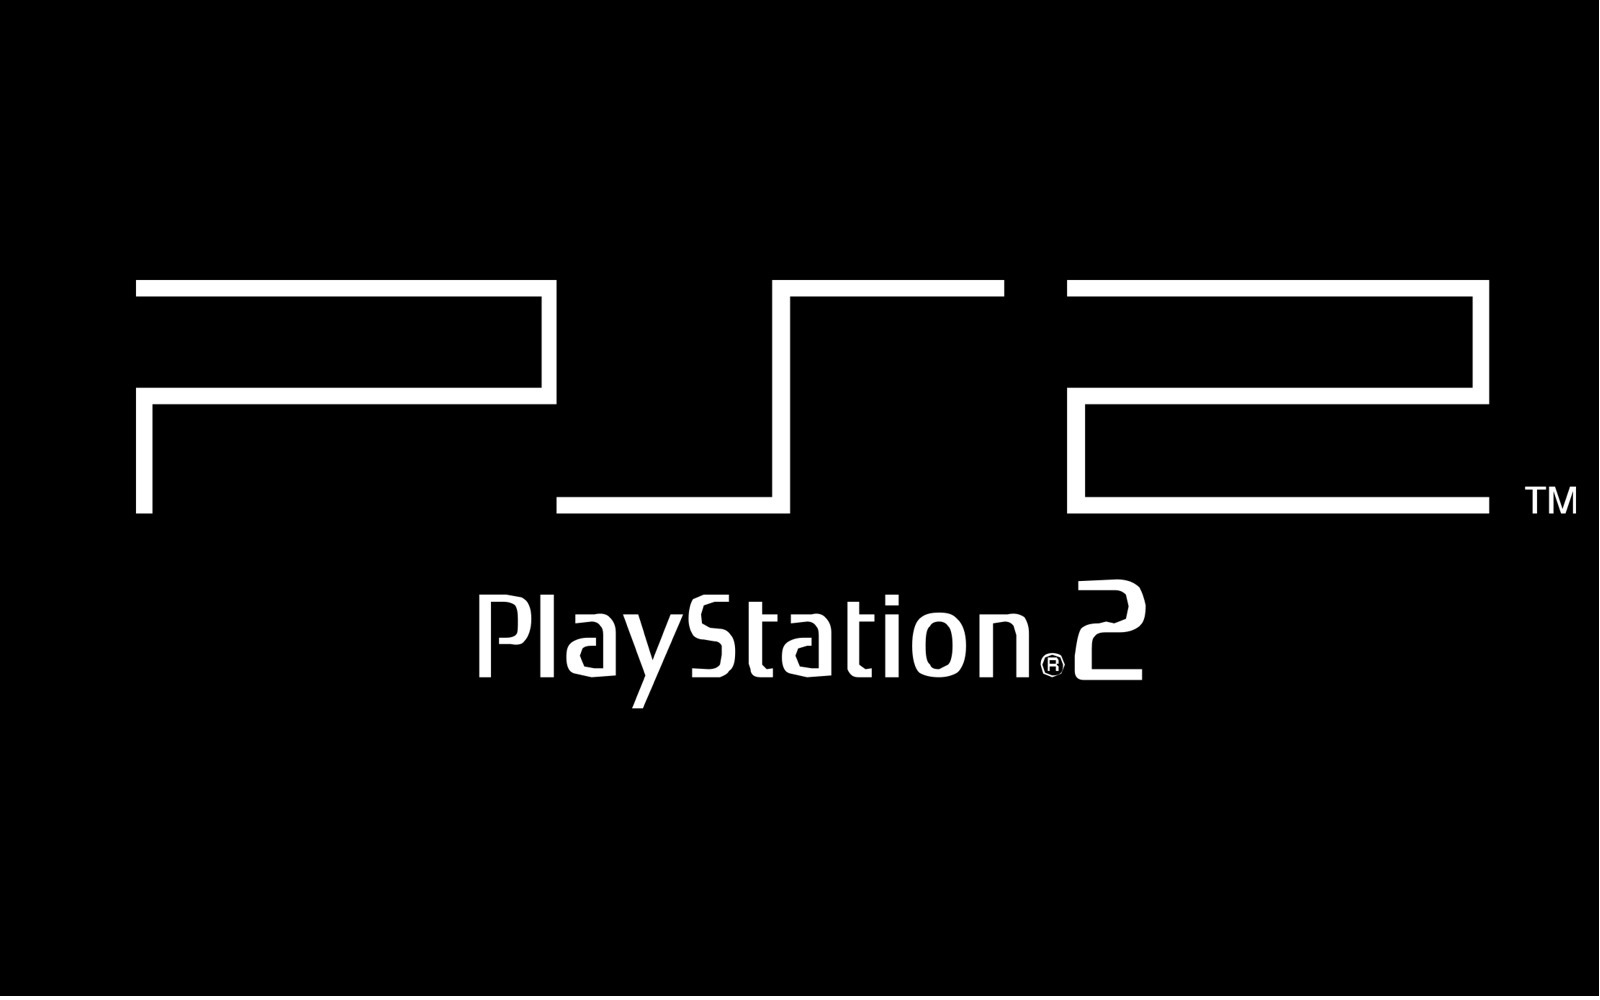 PlayStation Wallpaper 002